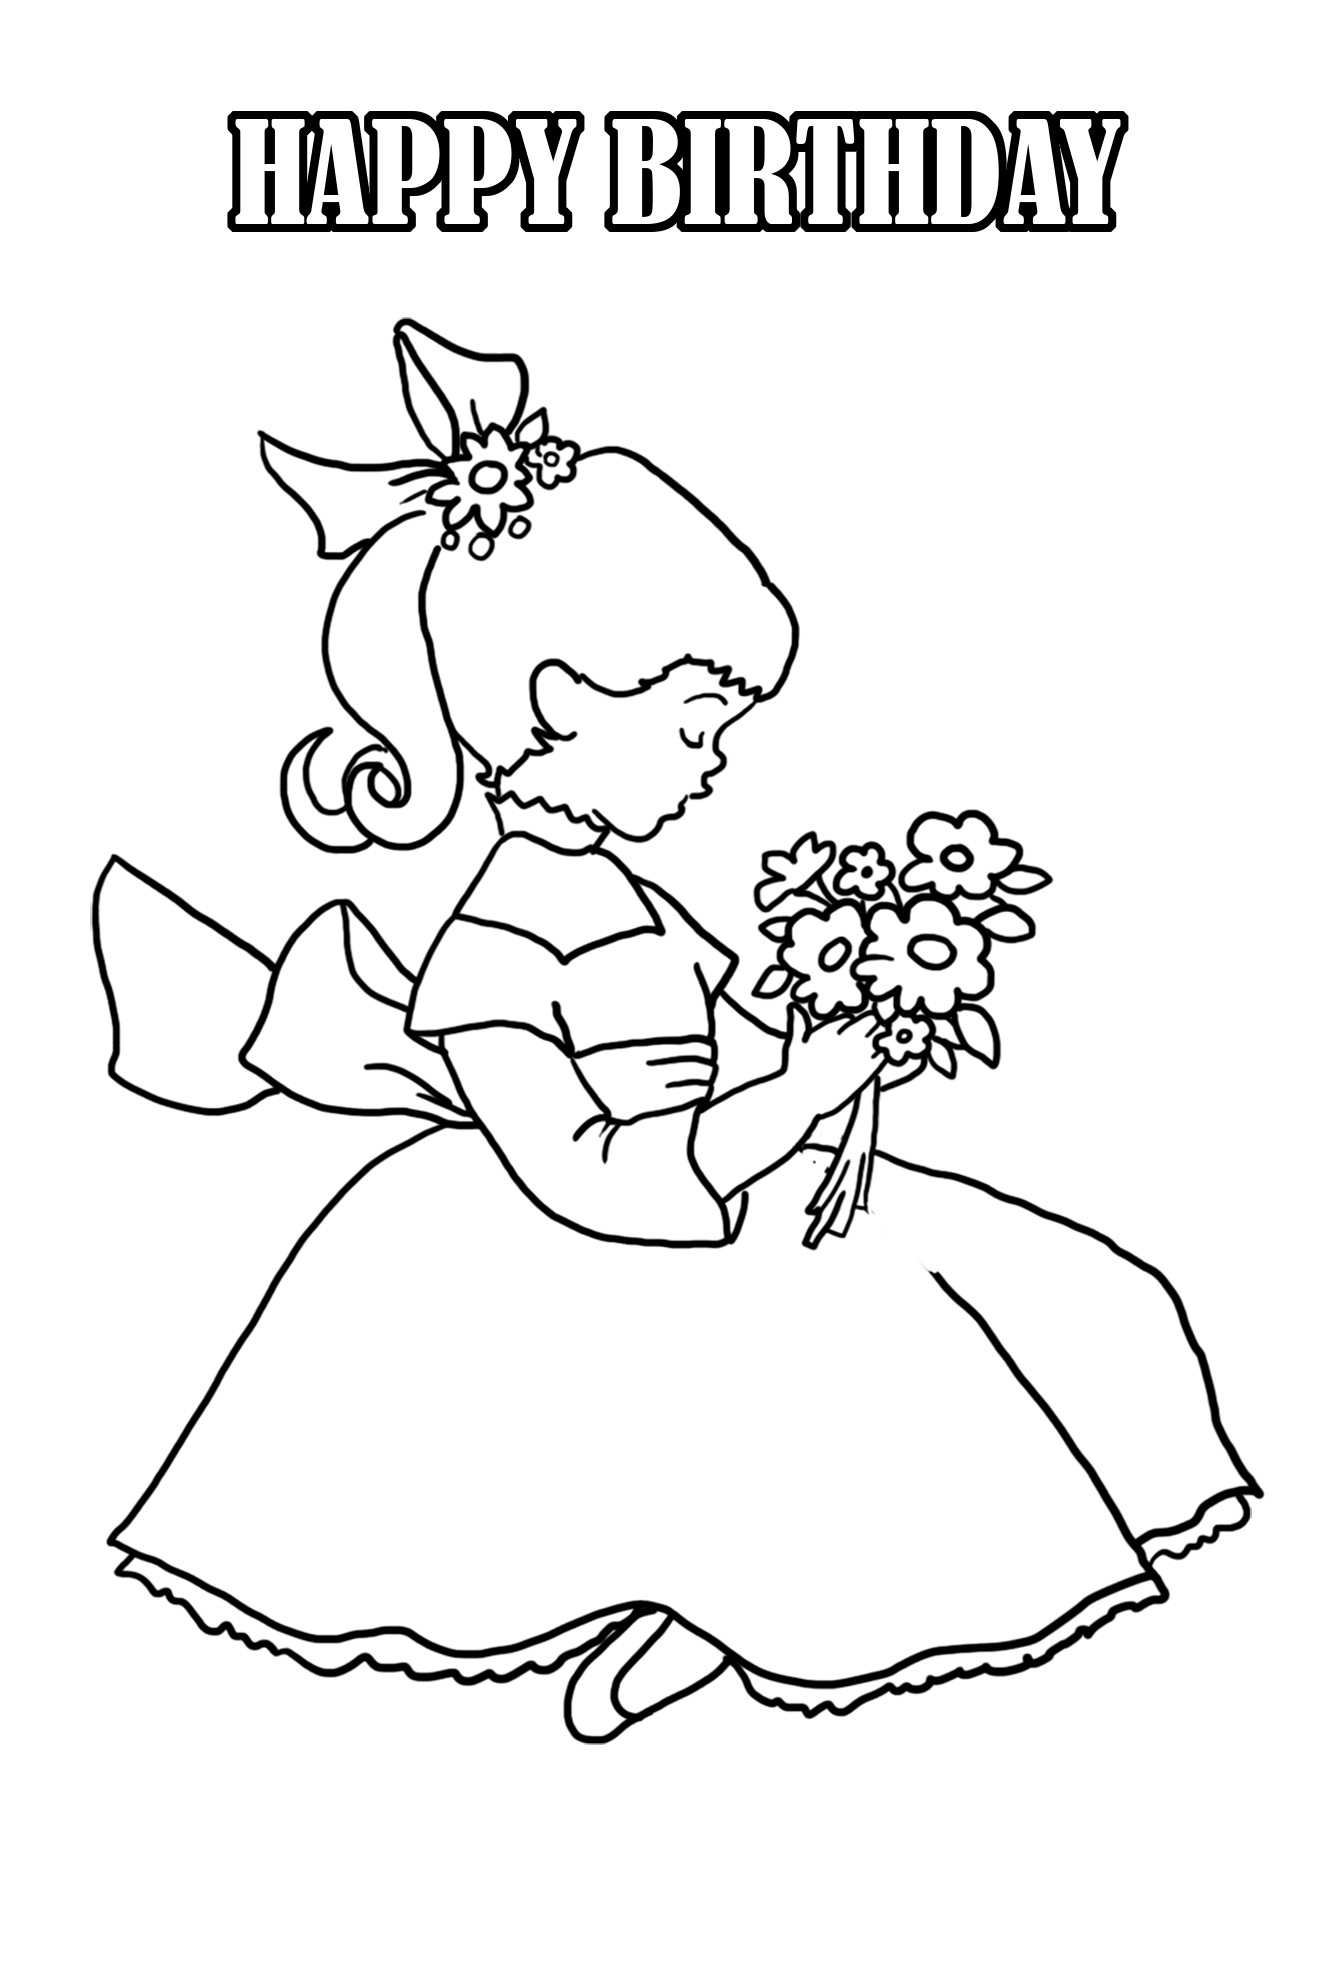 Coloring Sheets For Girls That Have A Birthday9  Birthday Coloring Pages